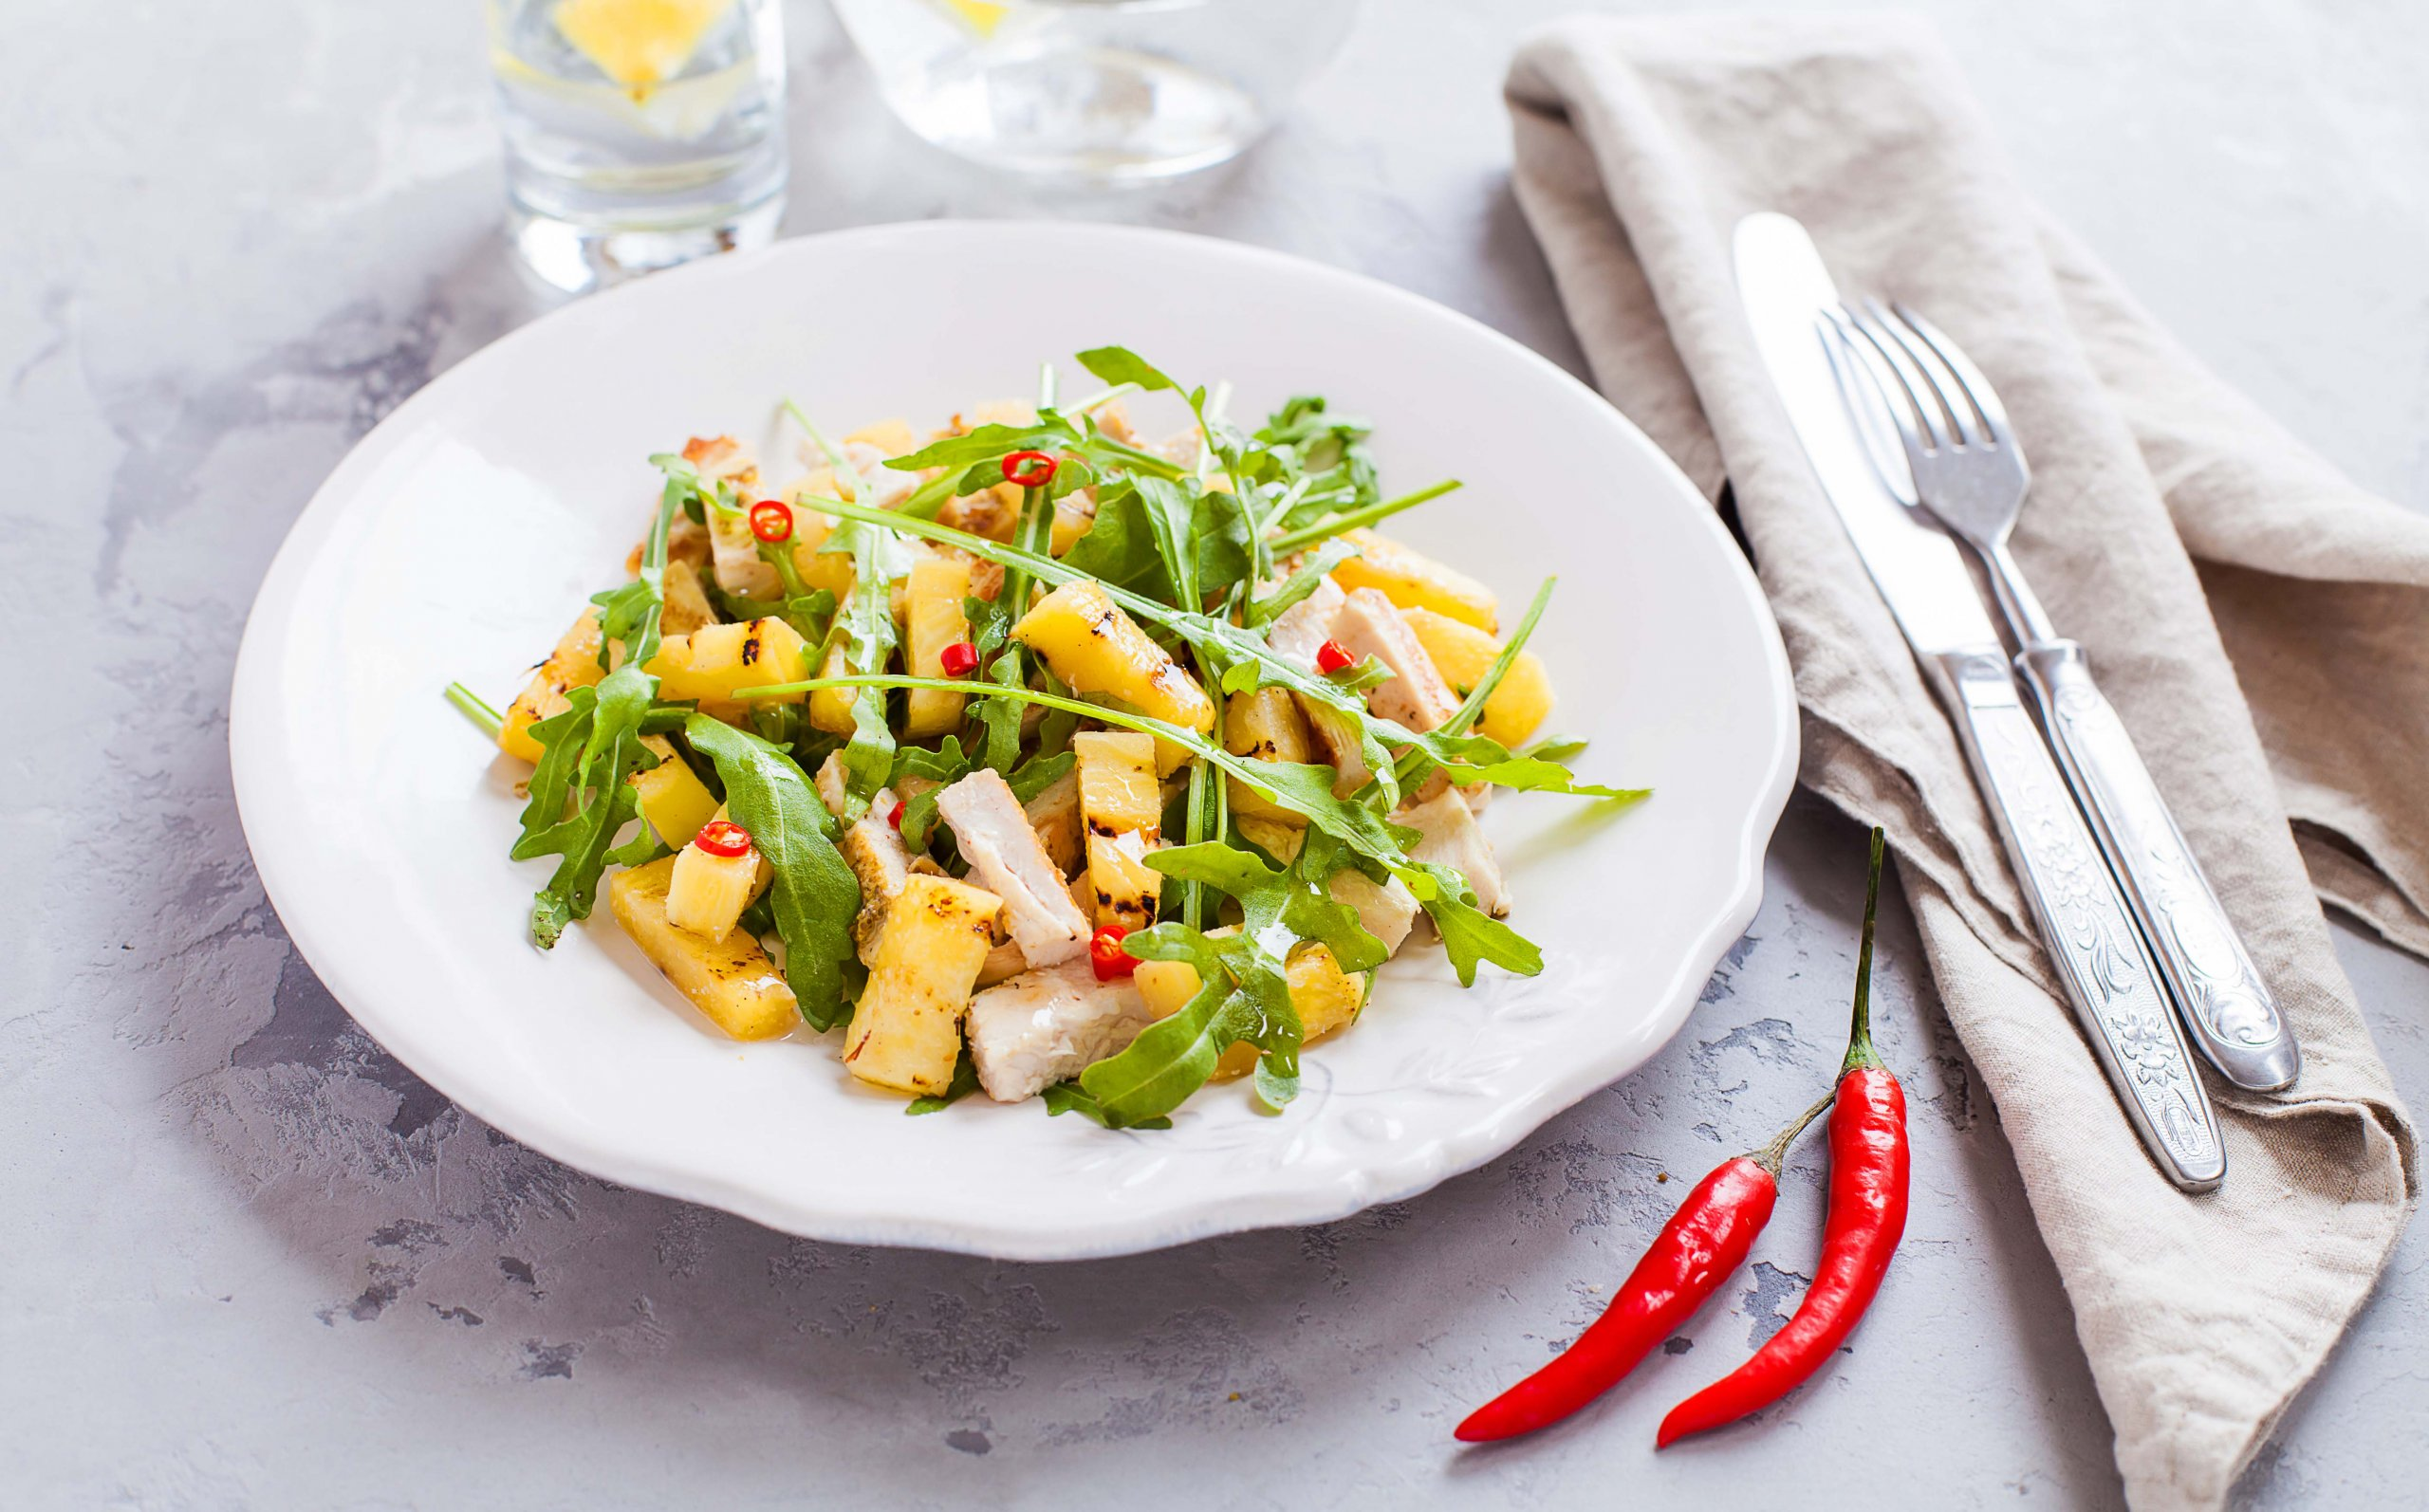 Griddled pineapple & chicken salad with nam jim dressing